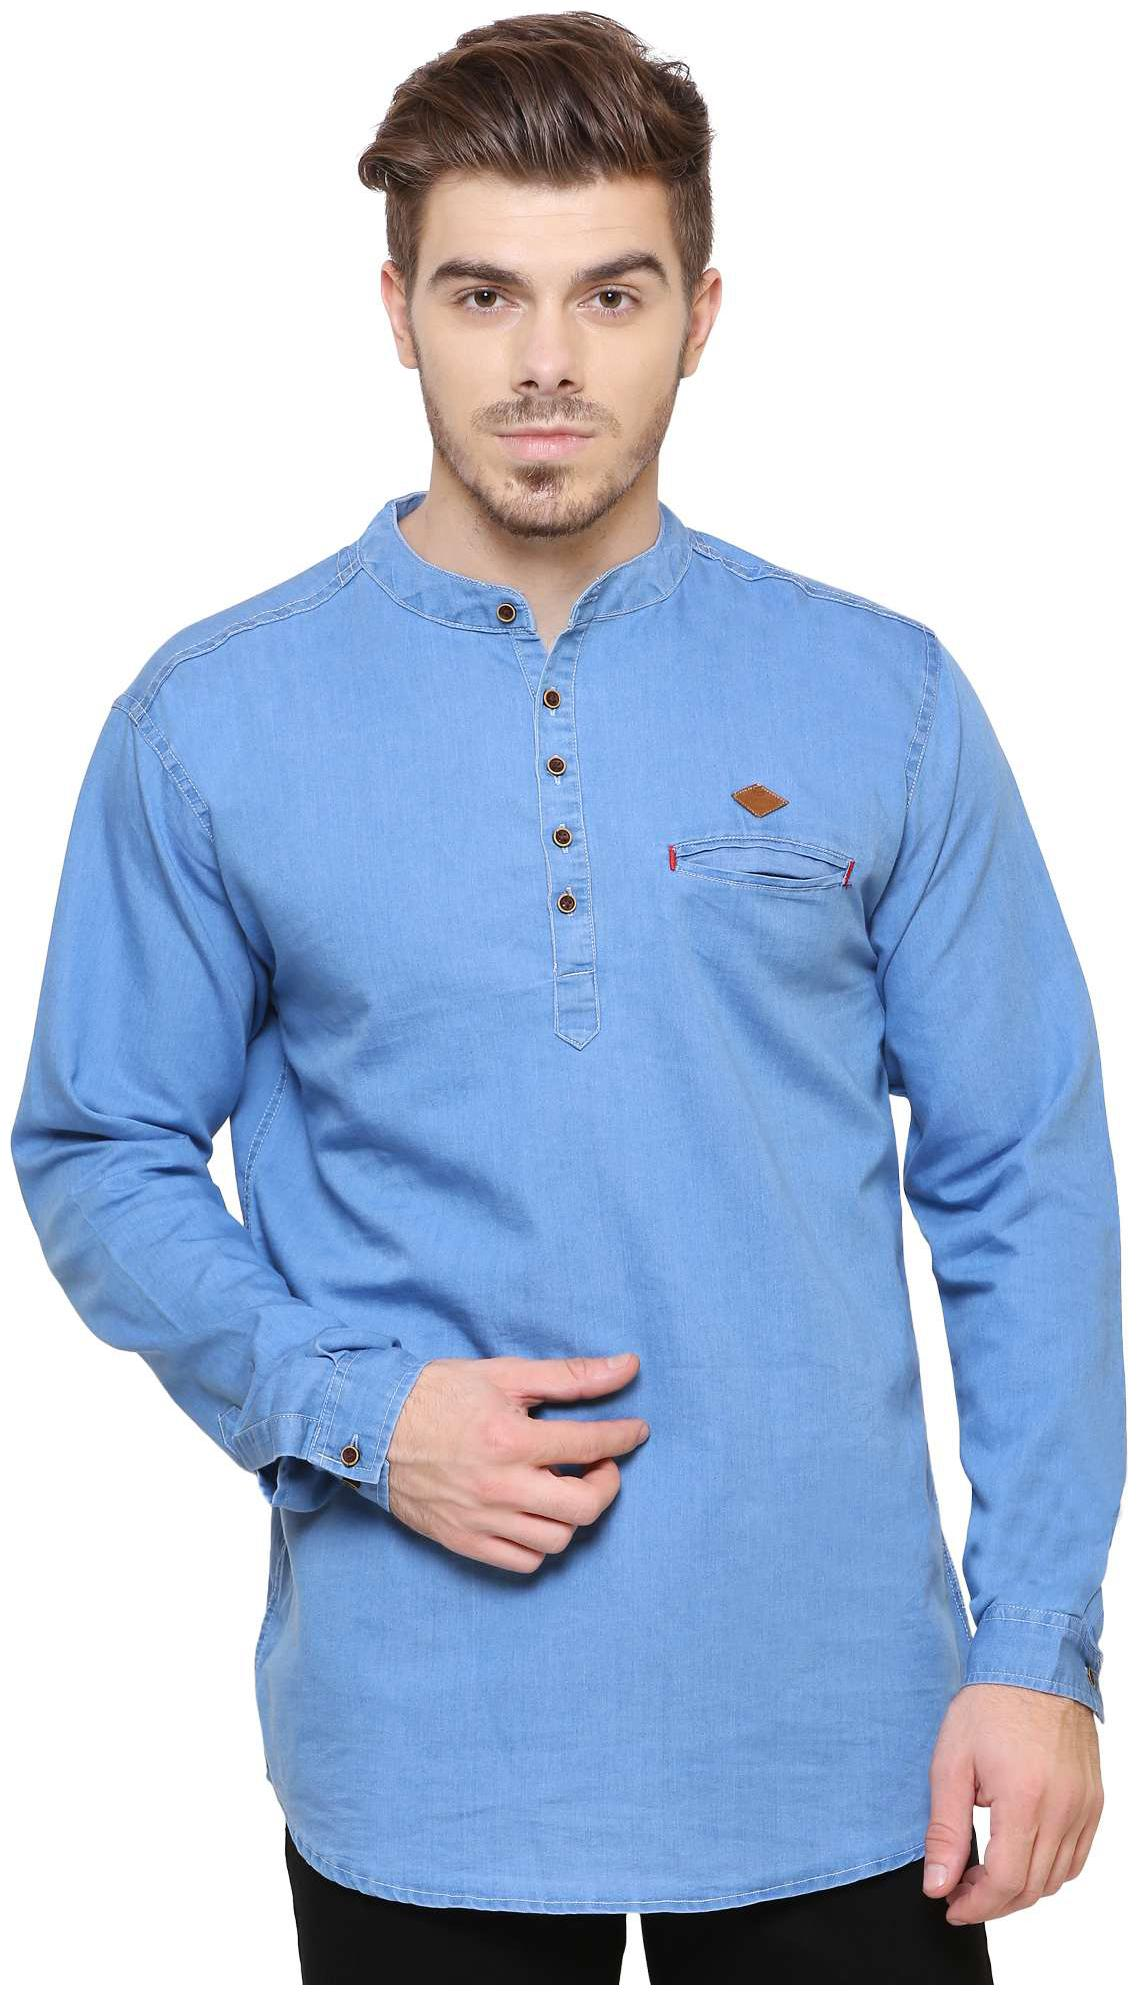 Kuons Avenue Men's Light Blue Denim Solid Casual Kurta Shirt